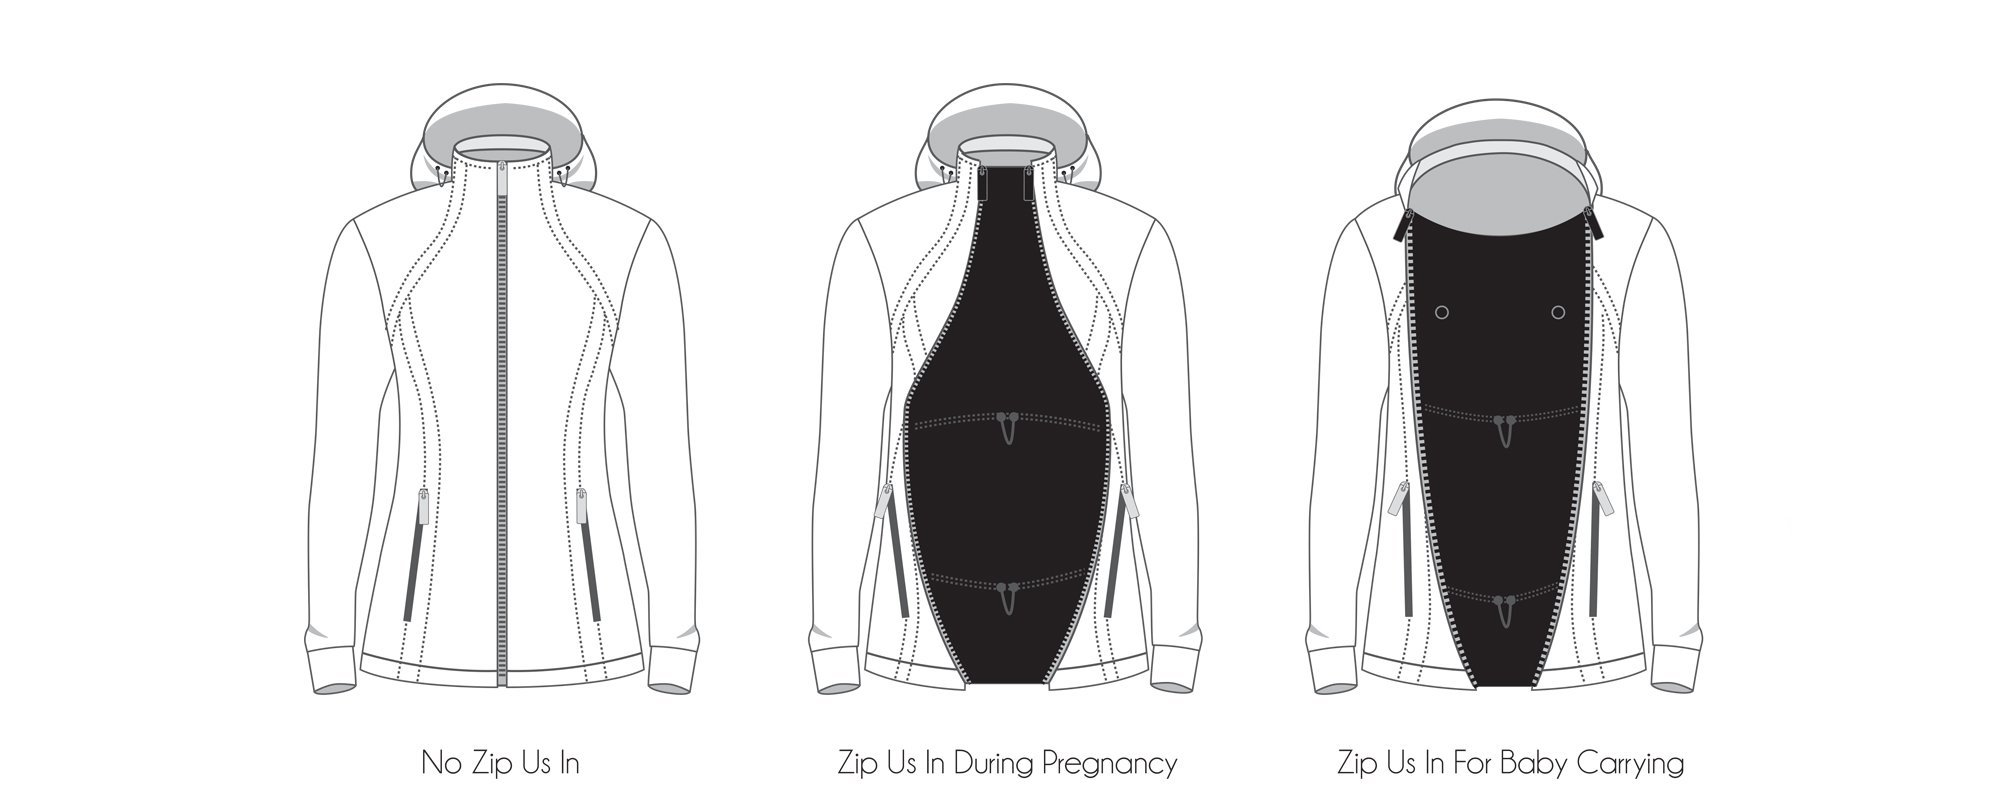 Zip Us In Jacket Expander Panel – Turn Your own Jacket into a Maternity Jacket (Single Vislon Zip YKK 5VS (One Pull Slider))